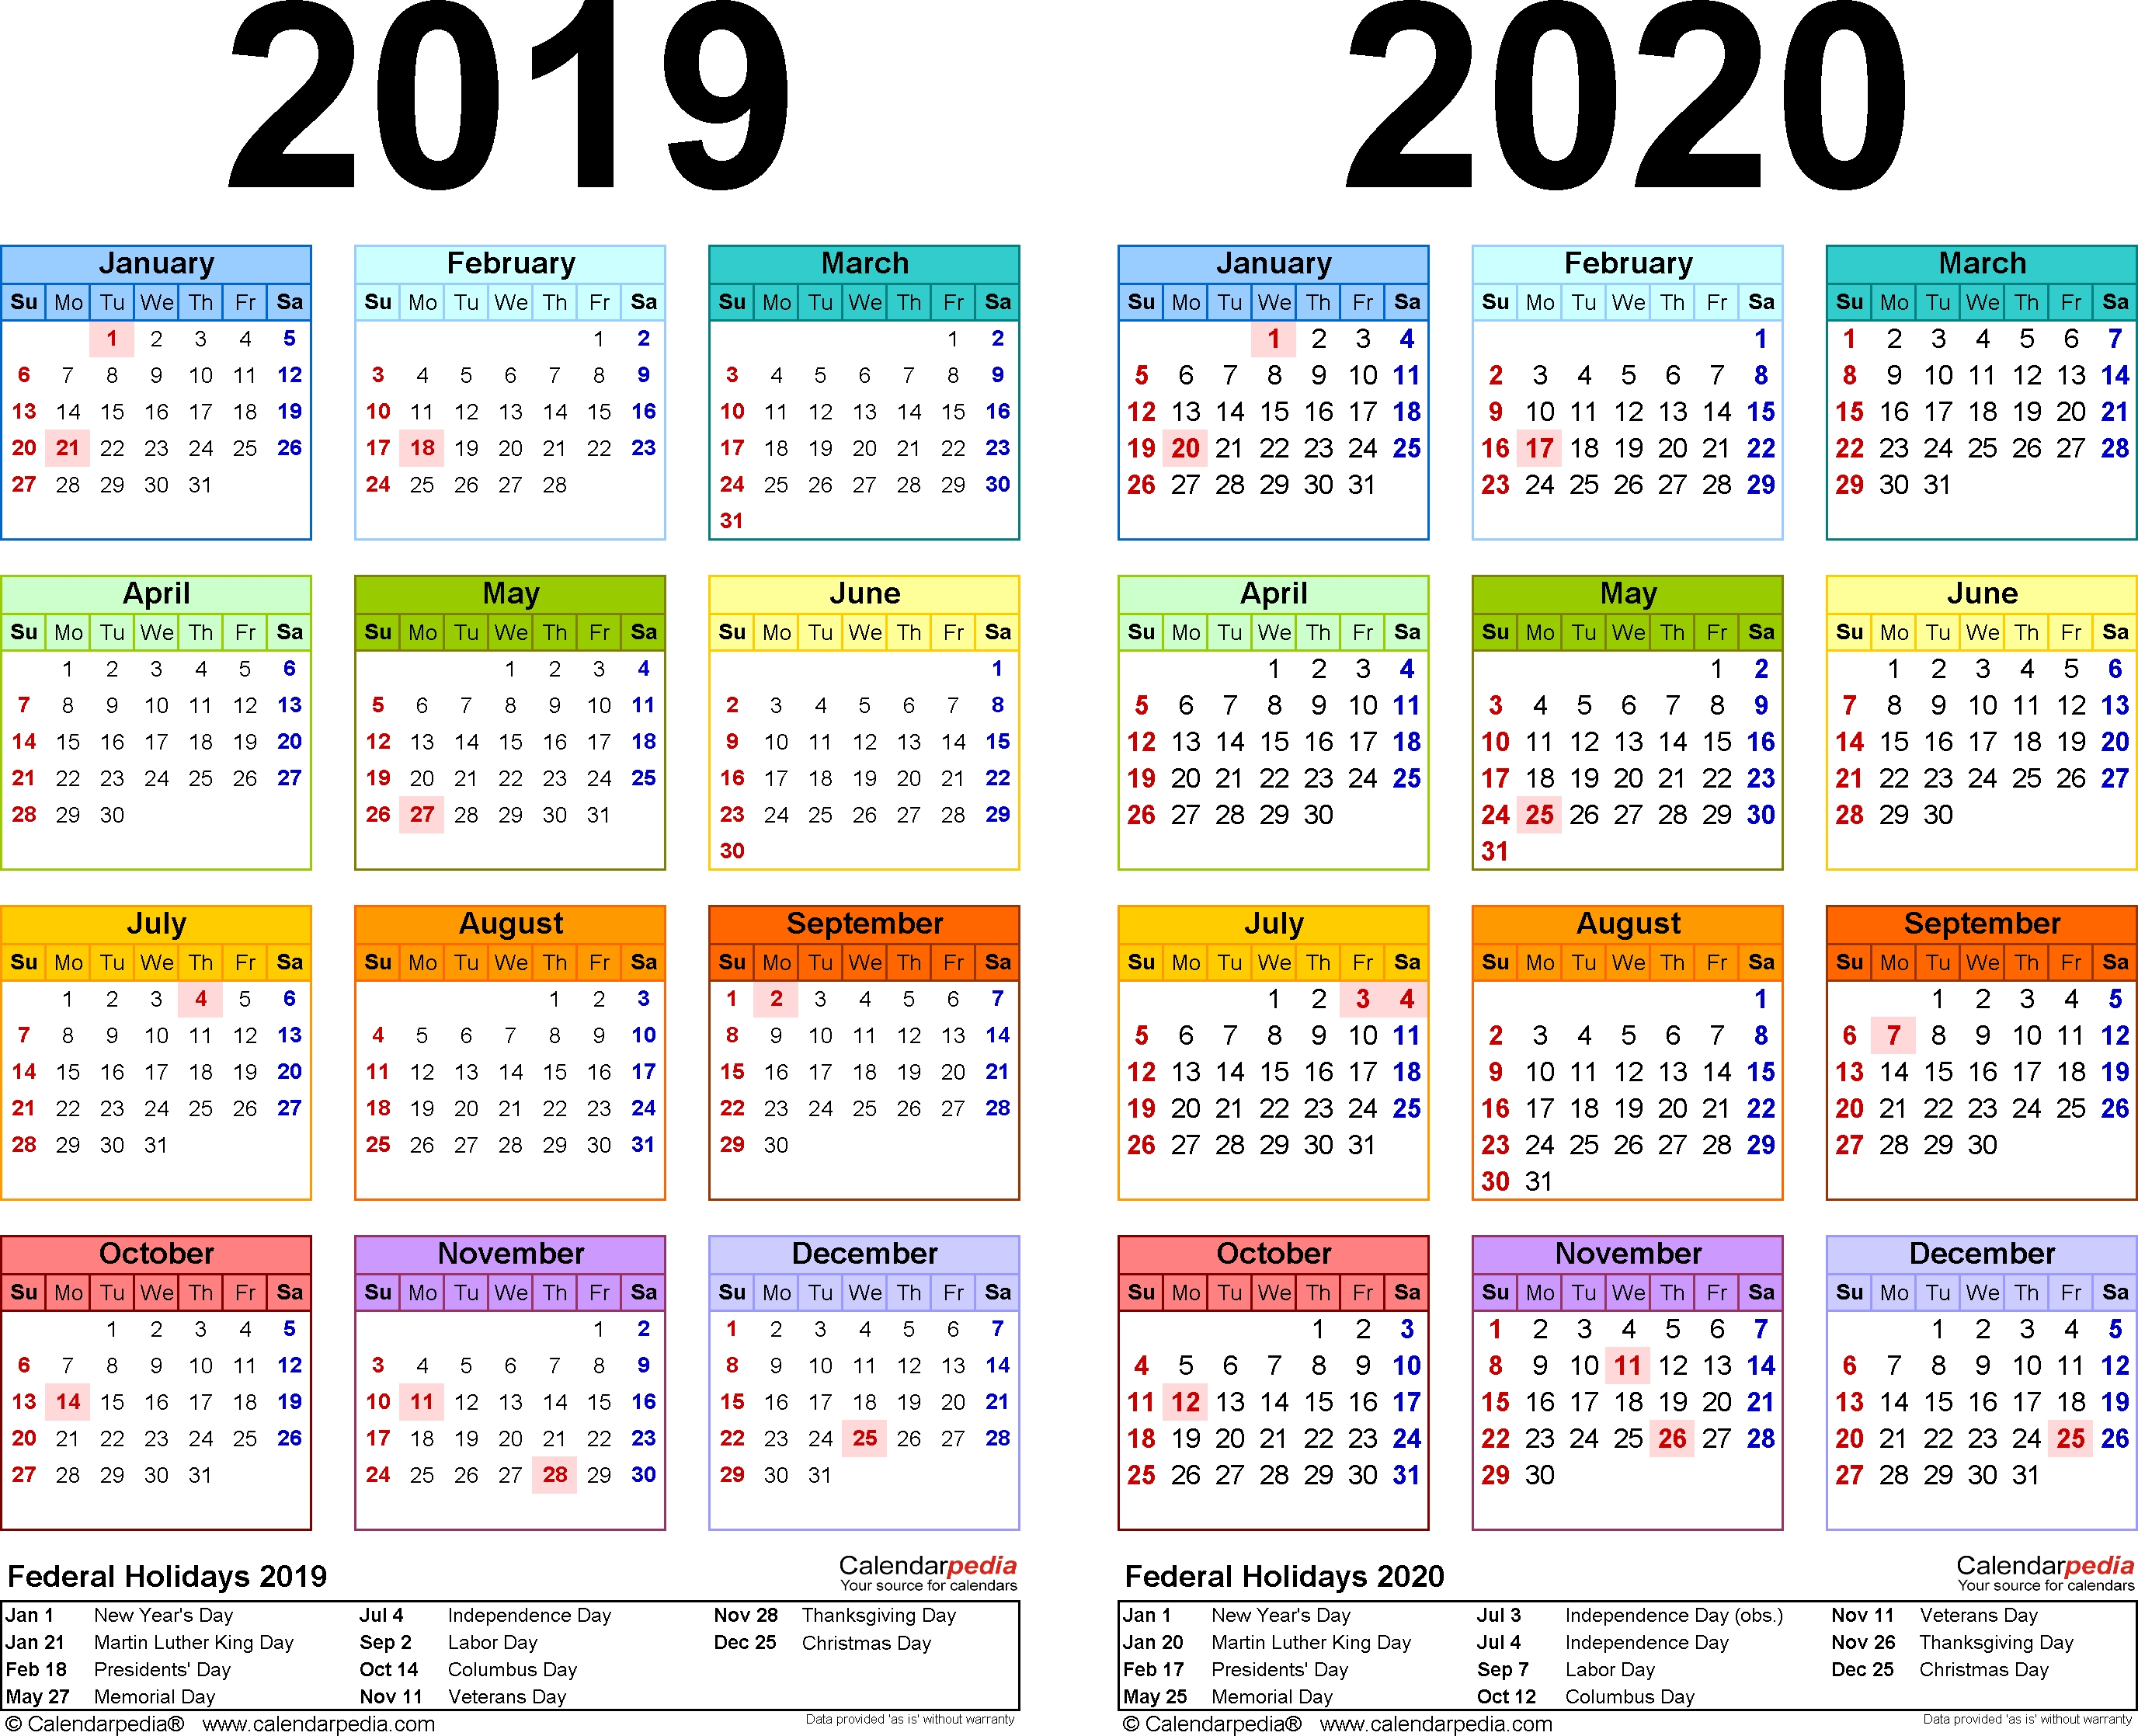 2019-2020 Calendar - Free Printable Two-Year Word Calendars regarding Microsoft Word Calendars 2019-2020